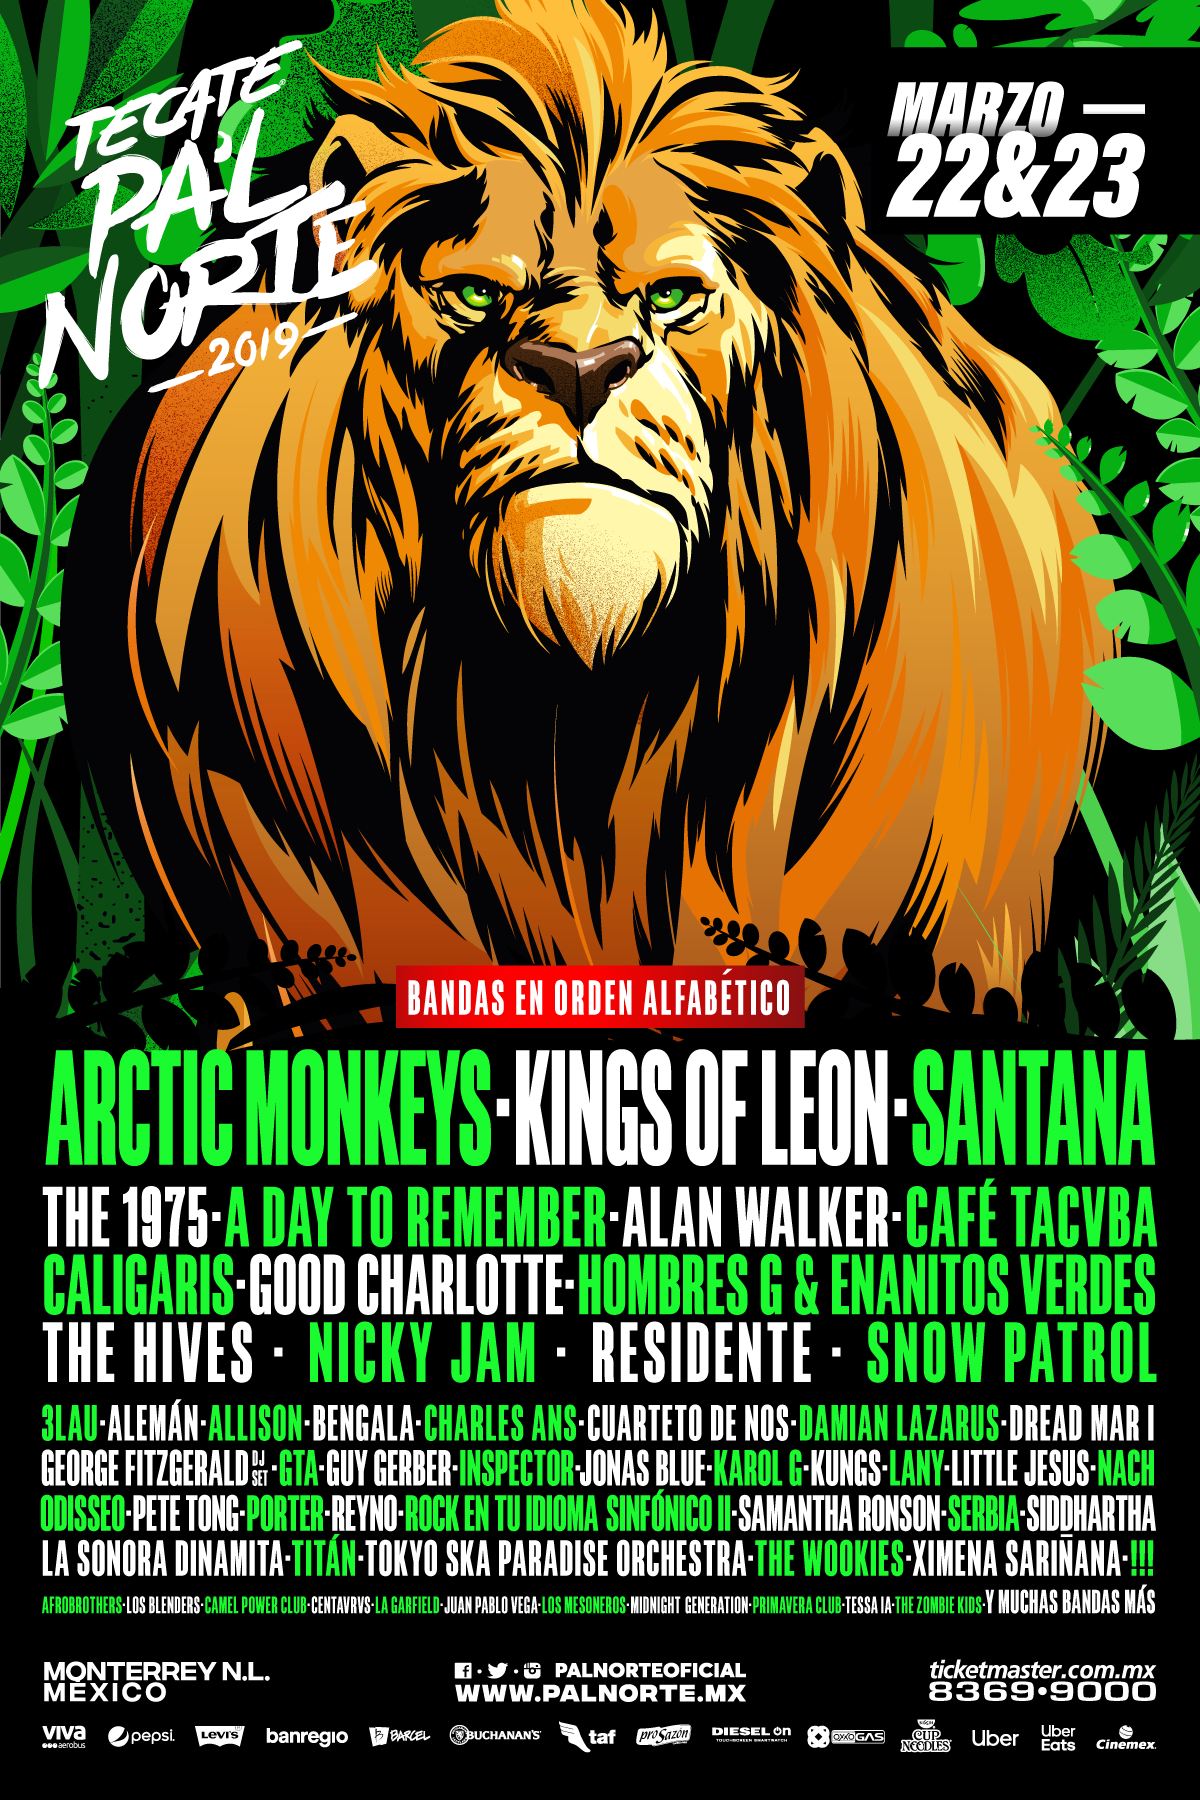 A Day To Remember, 1975, Good Charlotte, Arctic Monkeys, en Monterrey en el Tecate Pal Norte